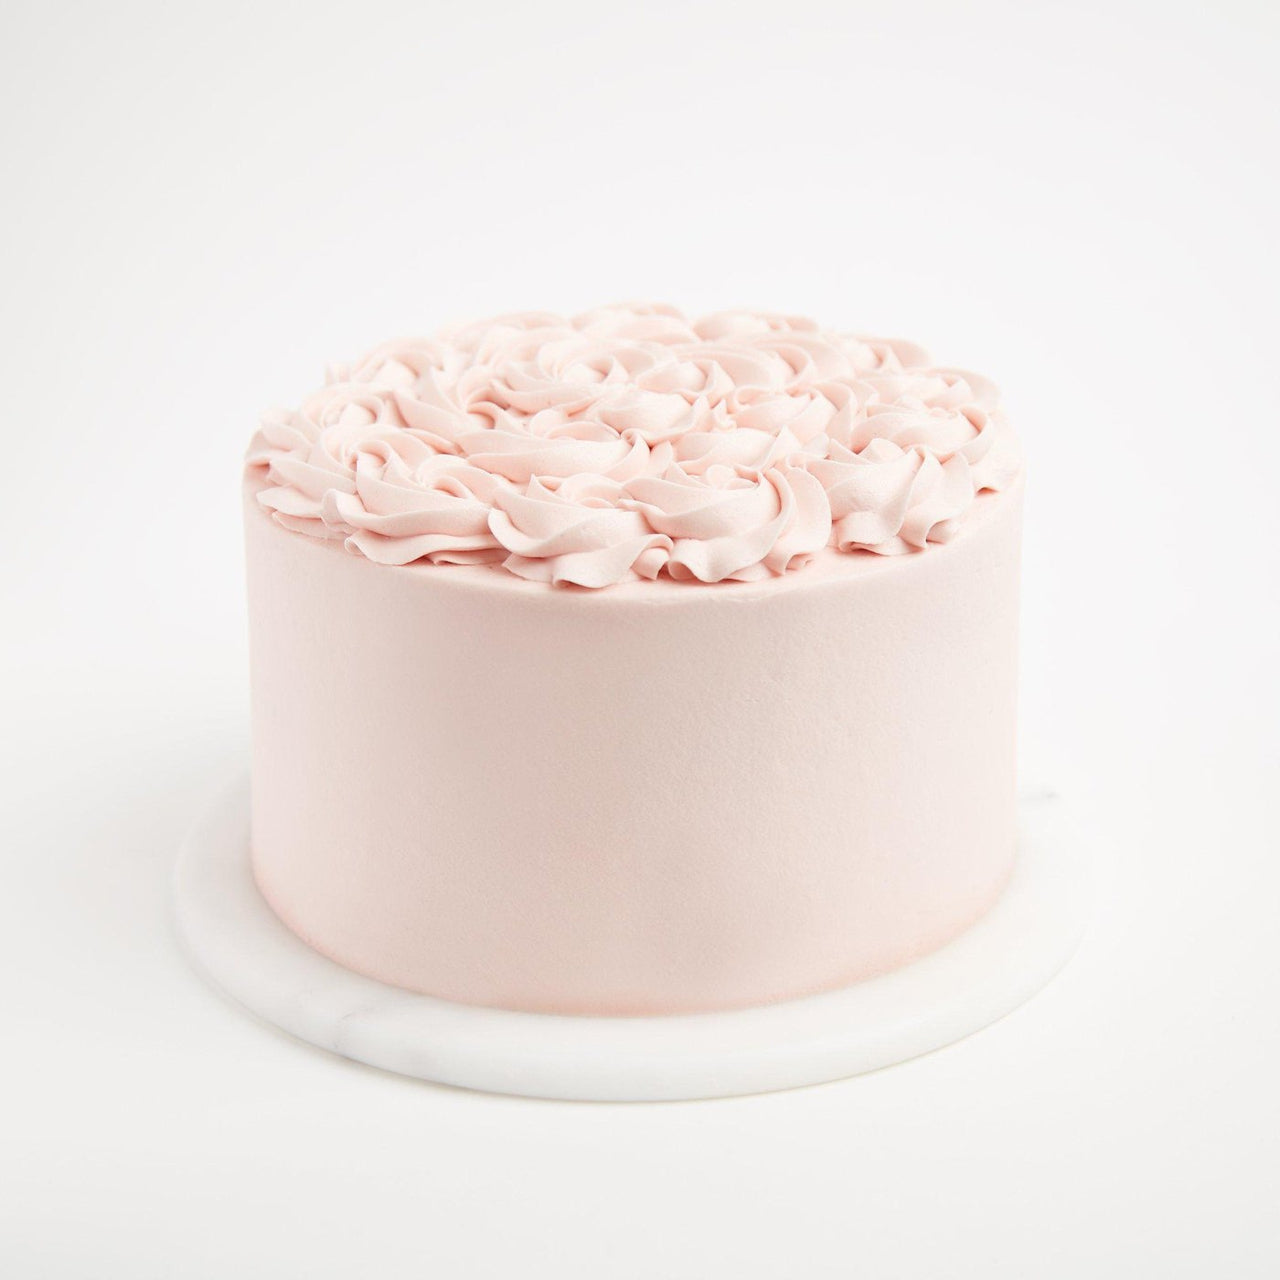 Gluten-Free Vanilla Rose Cake by Crumbs & Doilies